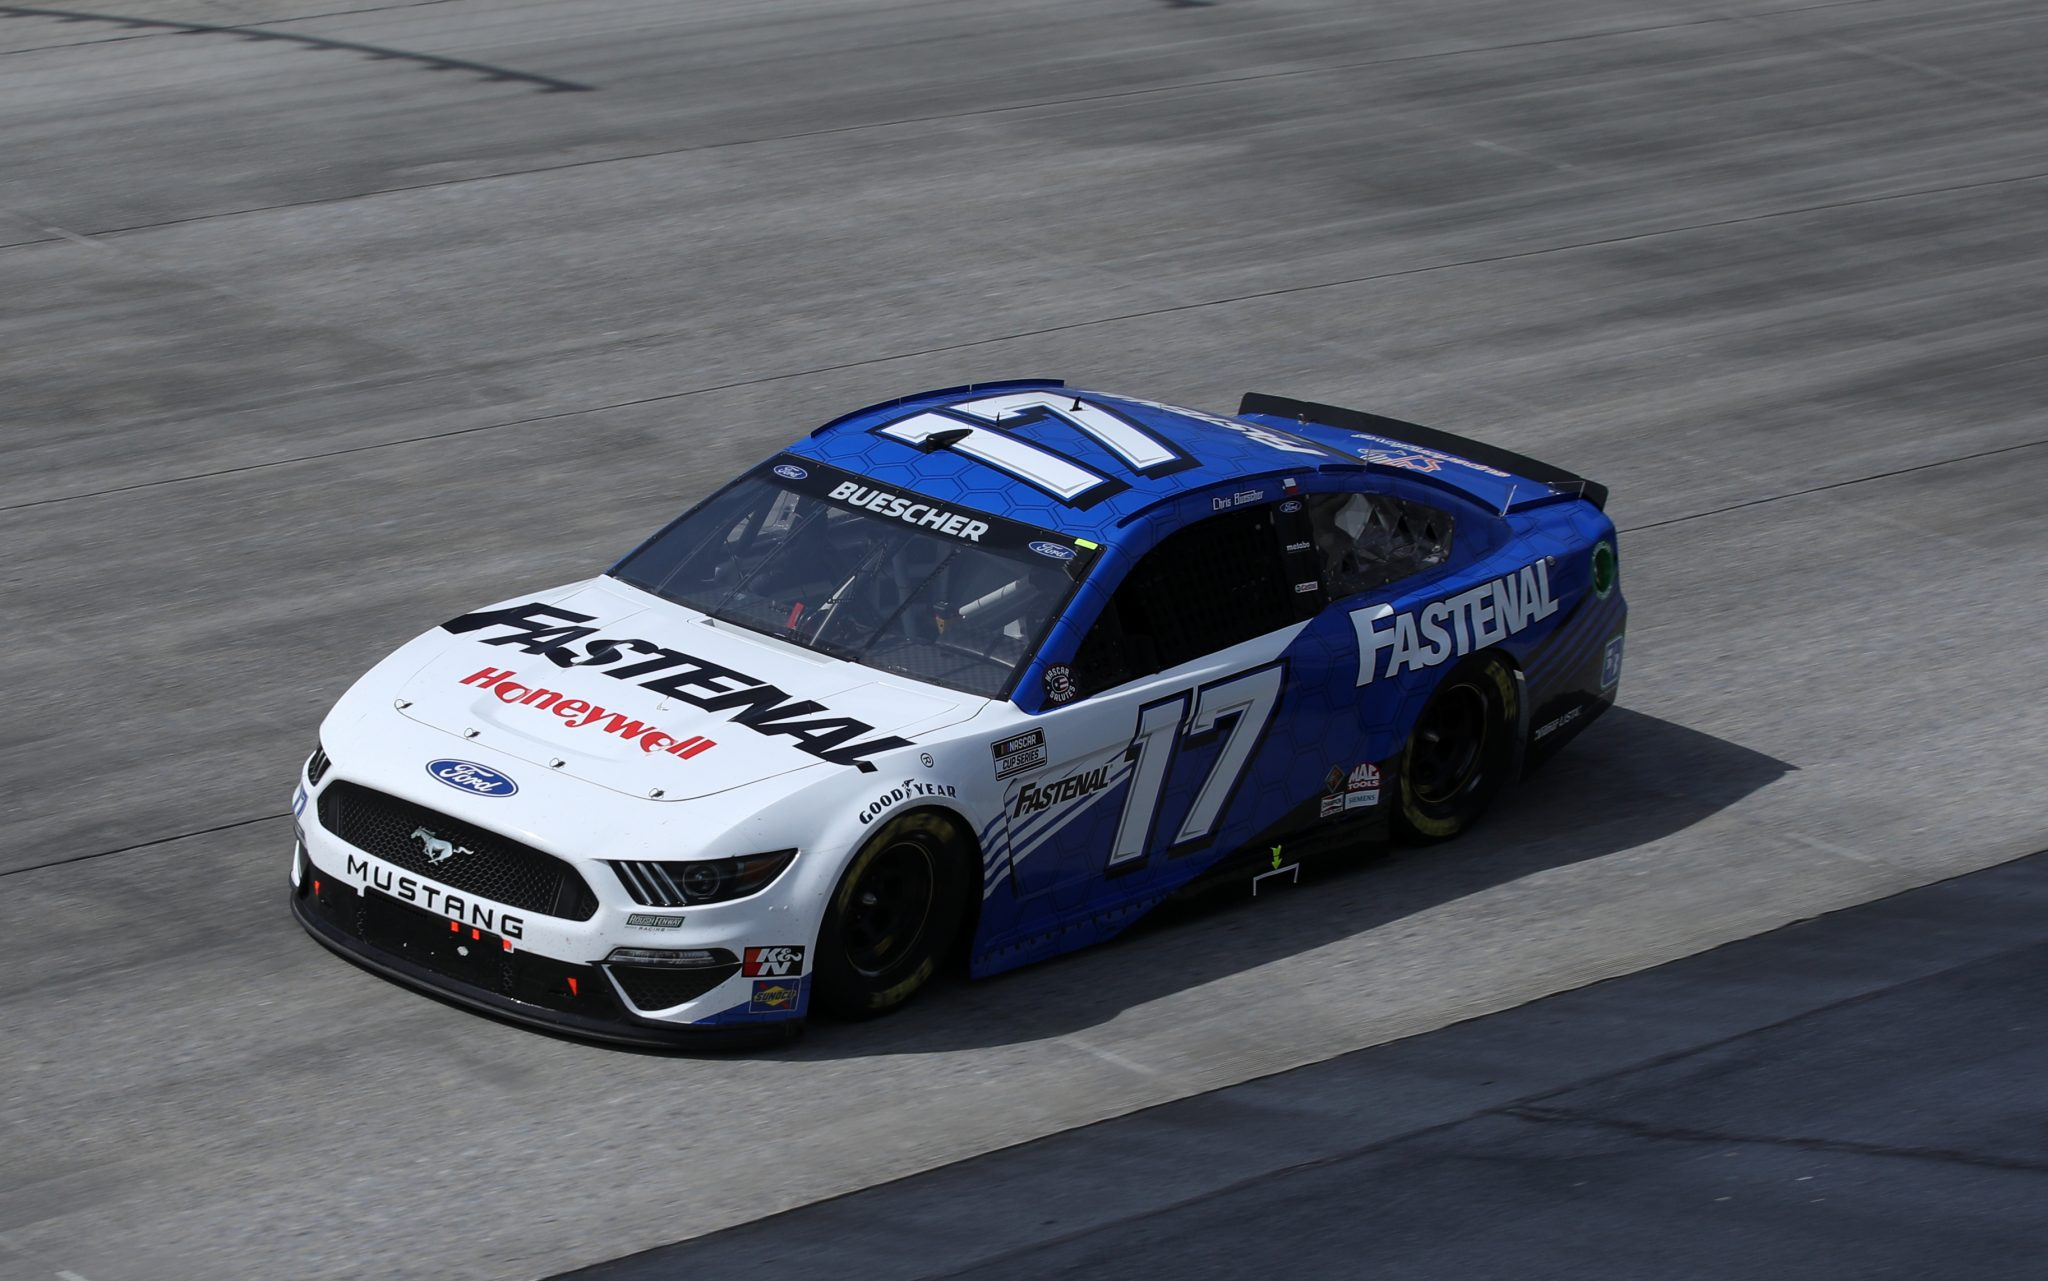 DOVER, DELAWARE - MAY 16: Chris Buescher, driver of the #17 Fastenal Ford, races during the NASCAR Cup Series Drydene 400 at Dover International Speedway on May 16, 2021 in Dover, Delaware. (Photo by Sean Gardner/Getty Images) | Getty Images